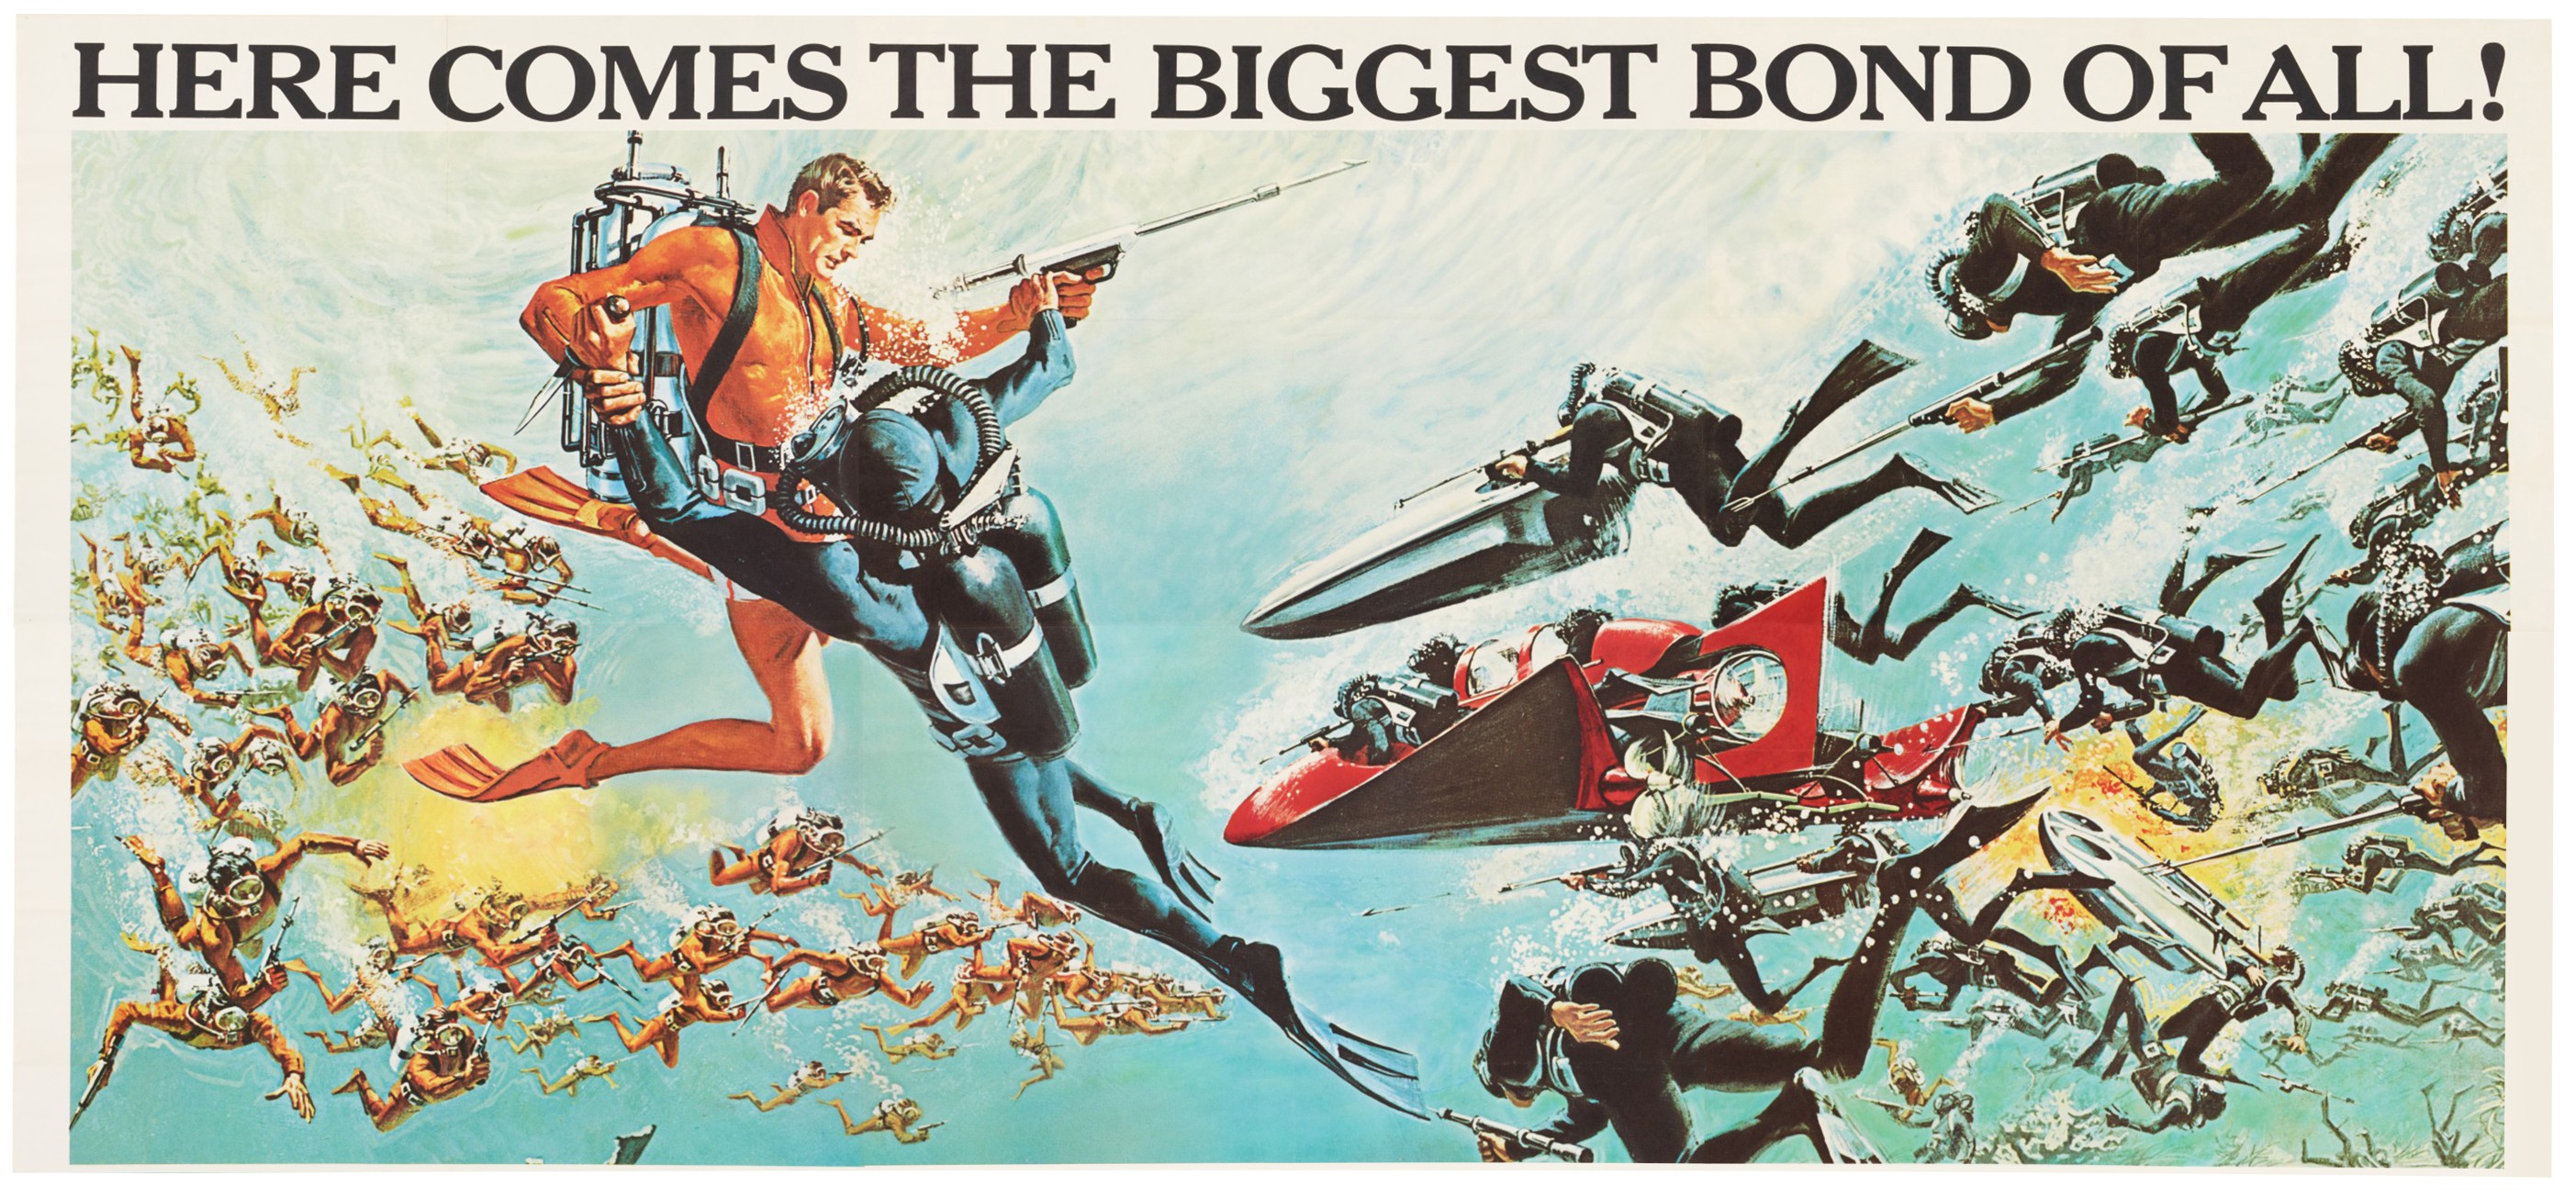 THUNDERBALL (1965) US, PARTIAL BILLBOARD POSTER (ACCOMPANIED BY A FRAMED LOBBY CARD SIGNED BY SEAN CONNERY.)